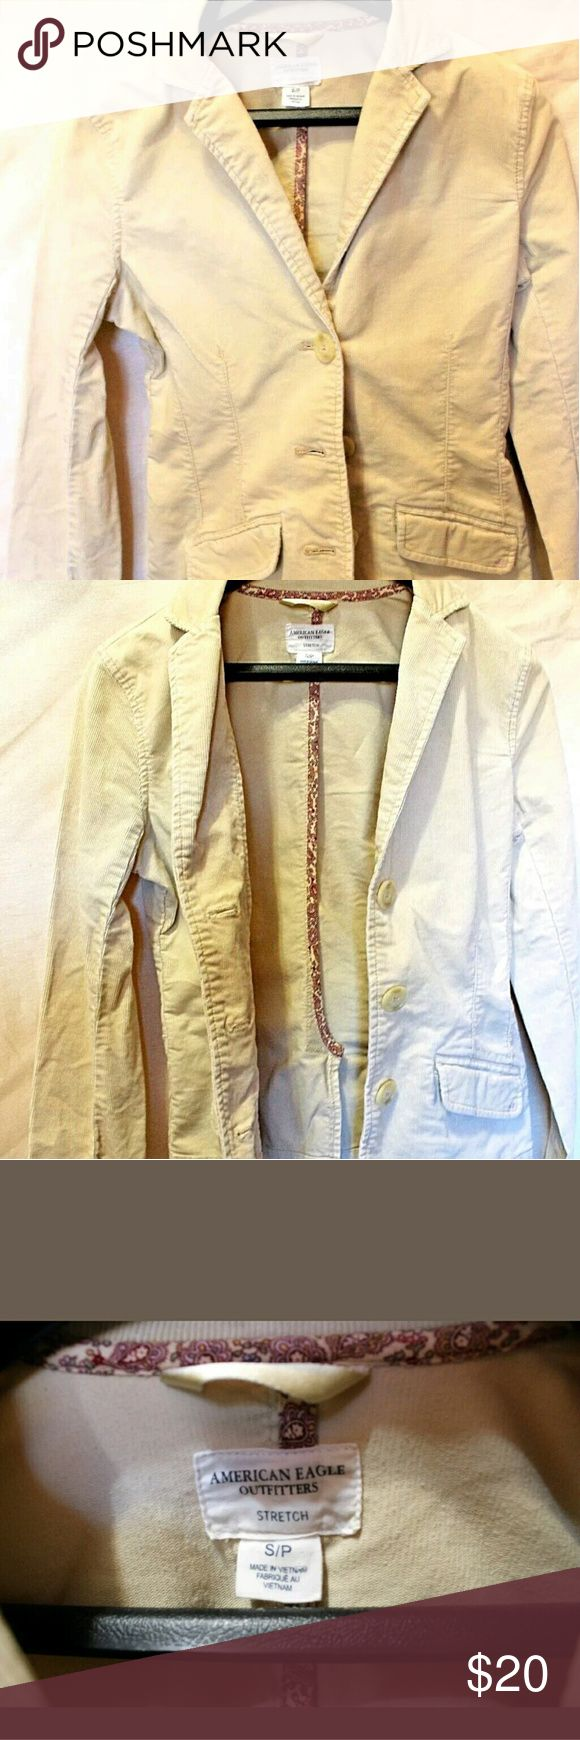 Cream colored American Eagle Outfitters Jacket Beautiful creme colored American Eagle jacket  Excellent condition Smoke free home American Eagle Outfitters Jackets & Coats